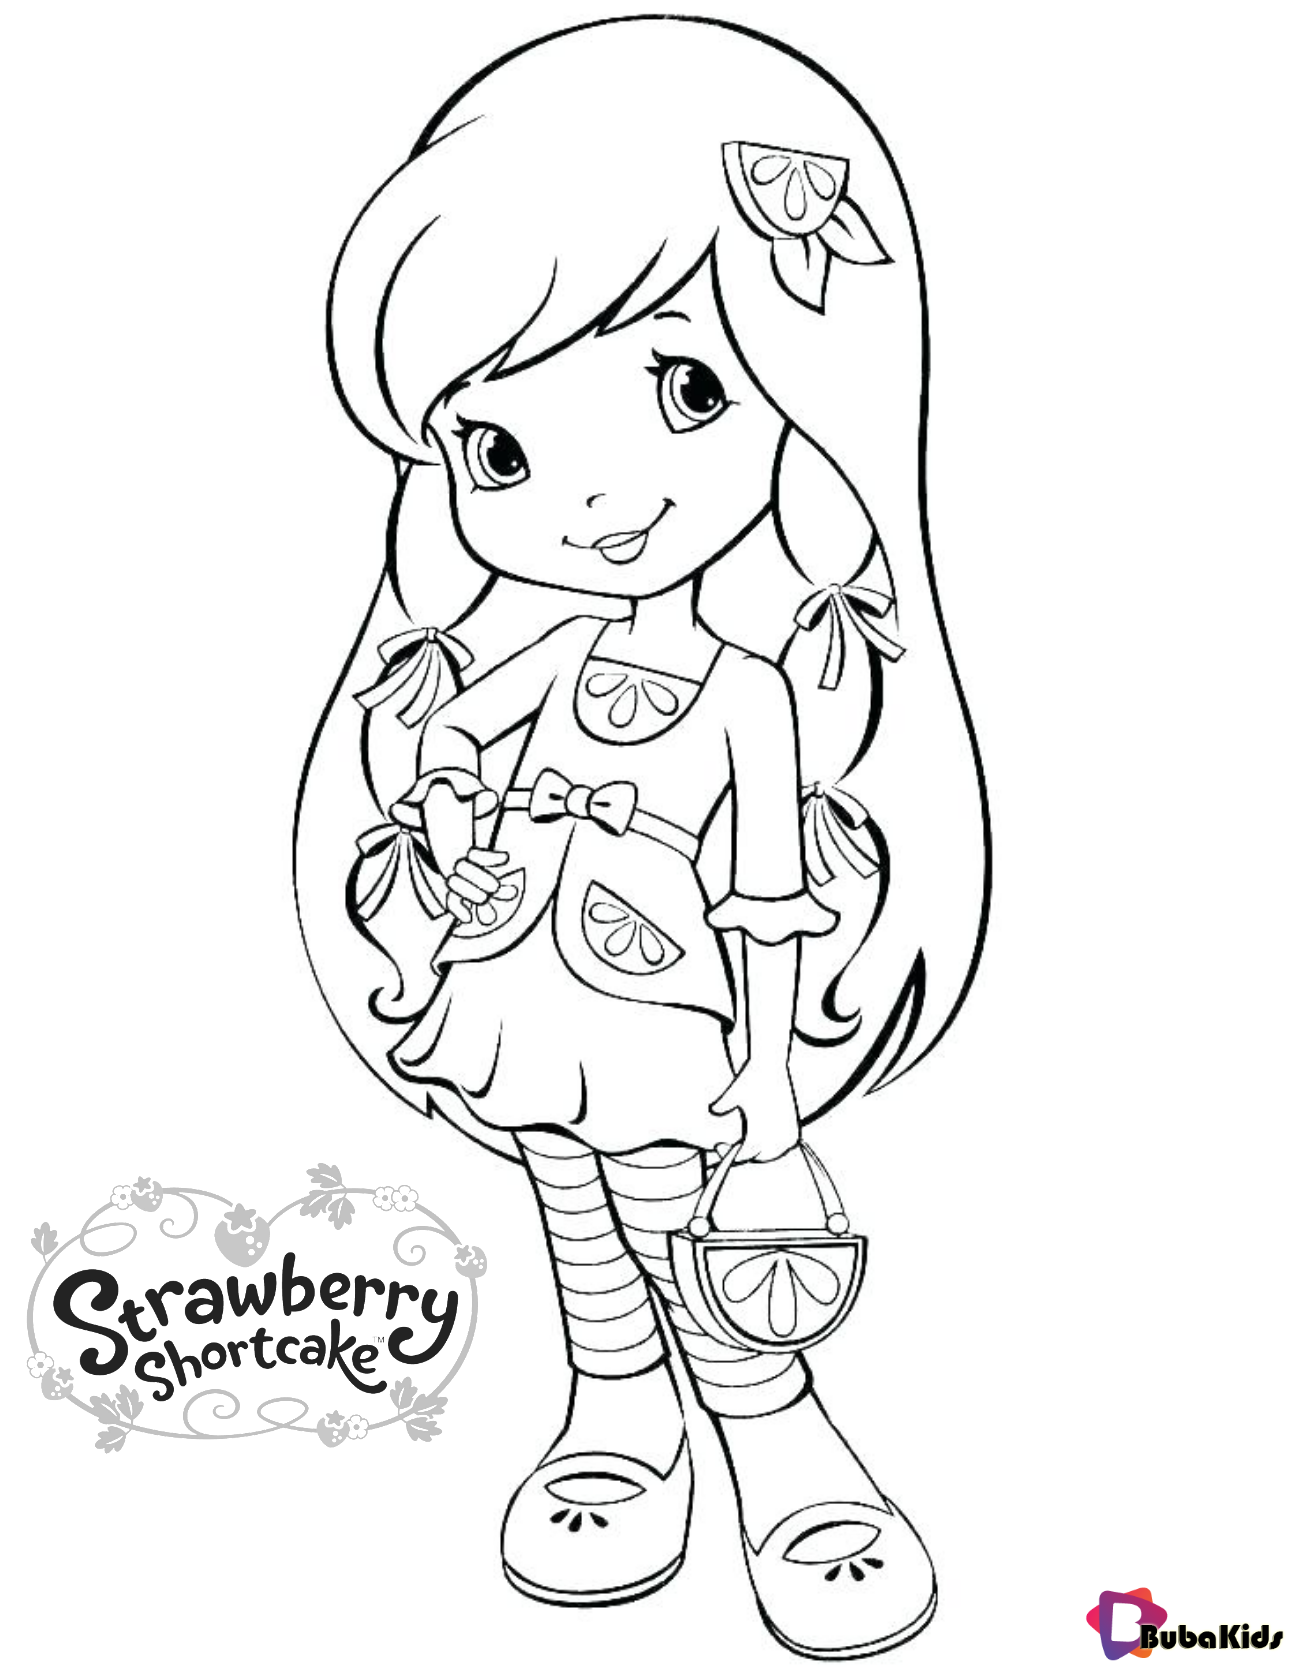 Plum Pudding Strawberry Shortcake Character Free Printable Coloring Page Bubakids Com Plum Strawberry Shortcake Coloring Pages Coloring Pages Coloring Books